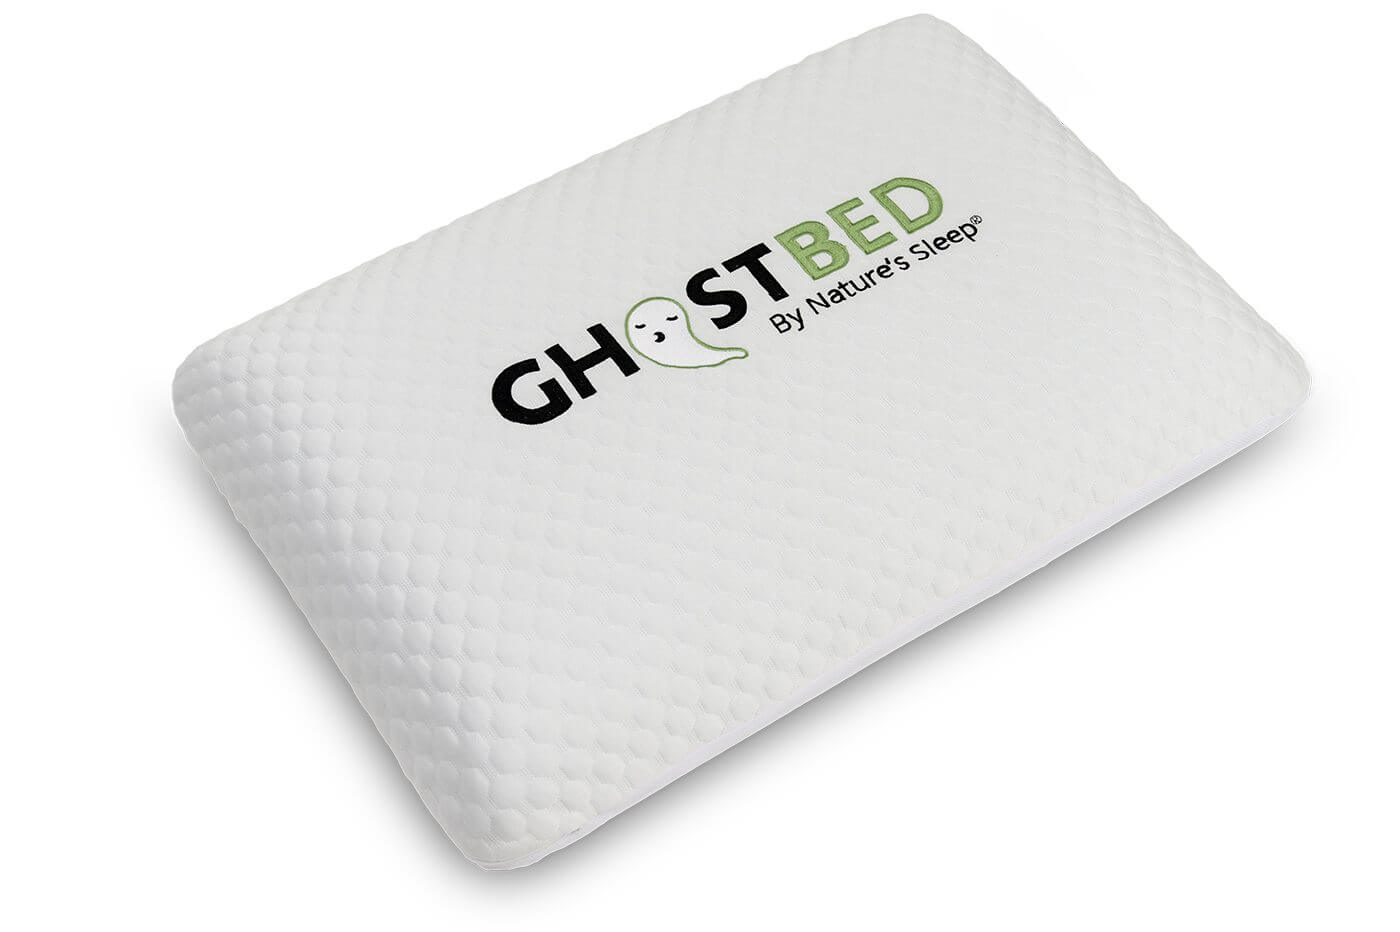 GhostBed Pillow 2021